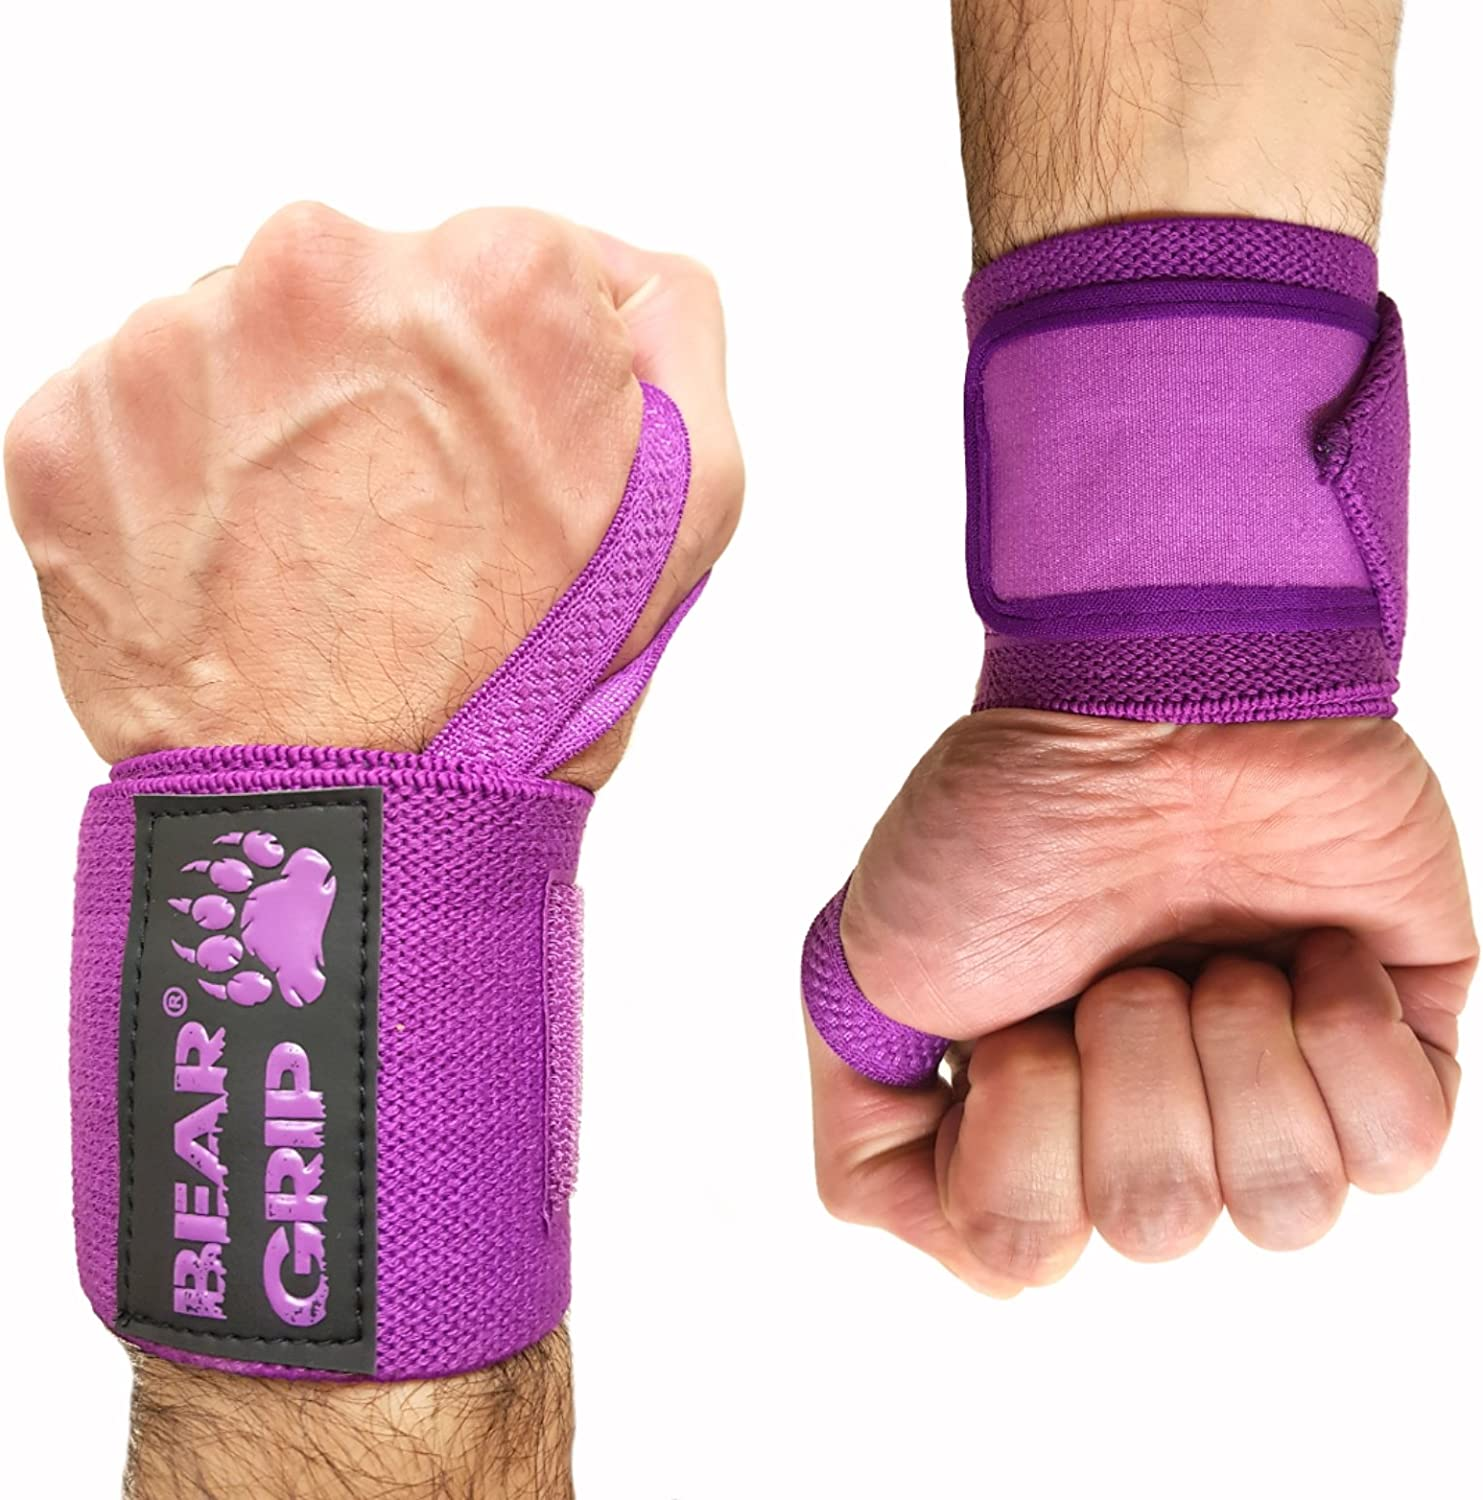 Sold in pairs BEAR GRIP Premium weight lifting wrist support wraps,